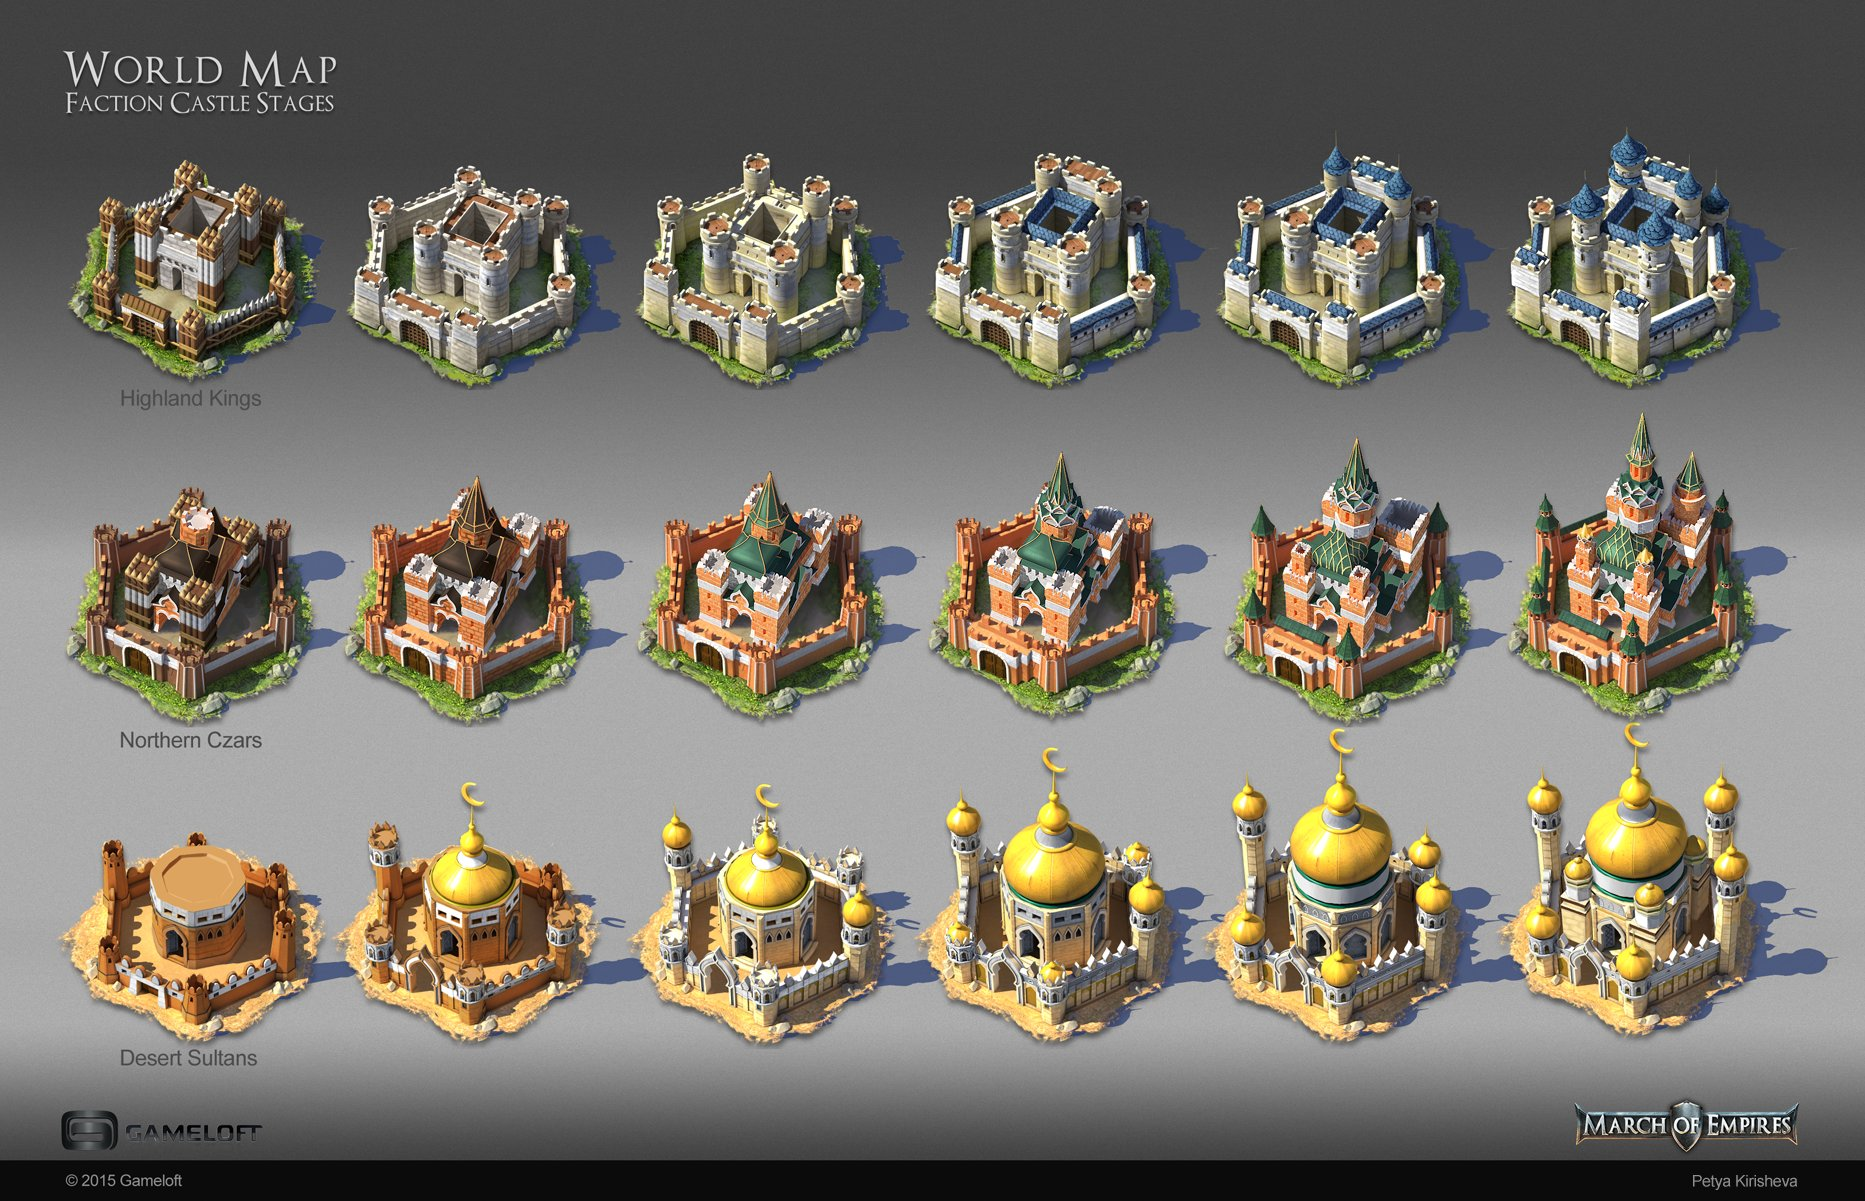 Artstation world map concepts and buildings petya kirisheva finished illustrations of the faction castles for the world map view of a mobile strategy game gumiabroncs Choice Image